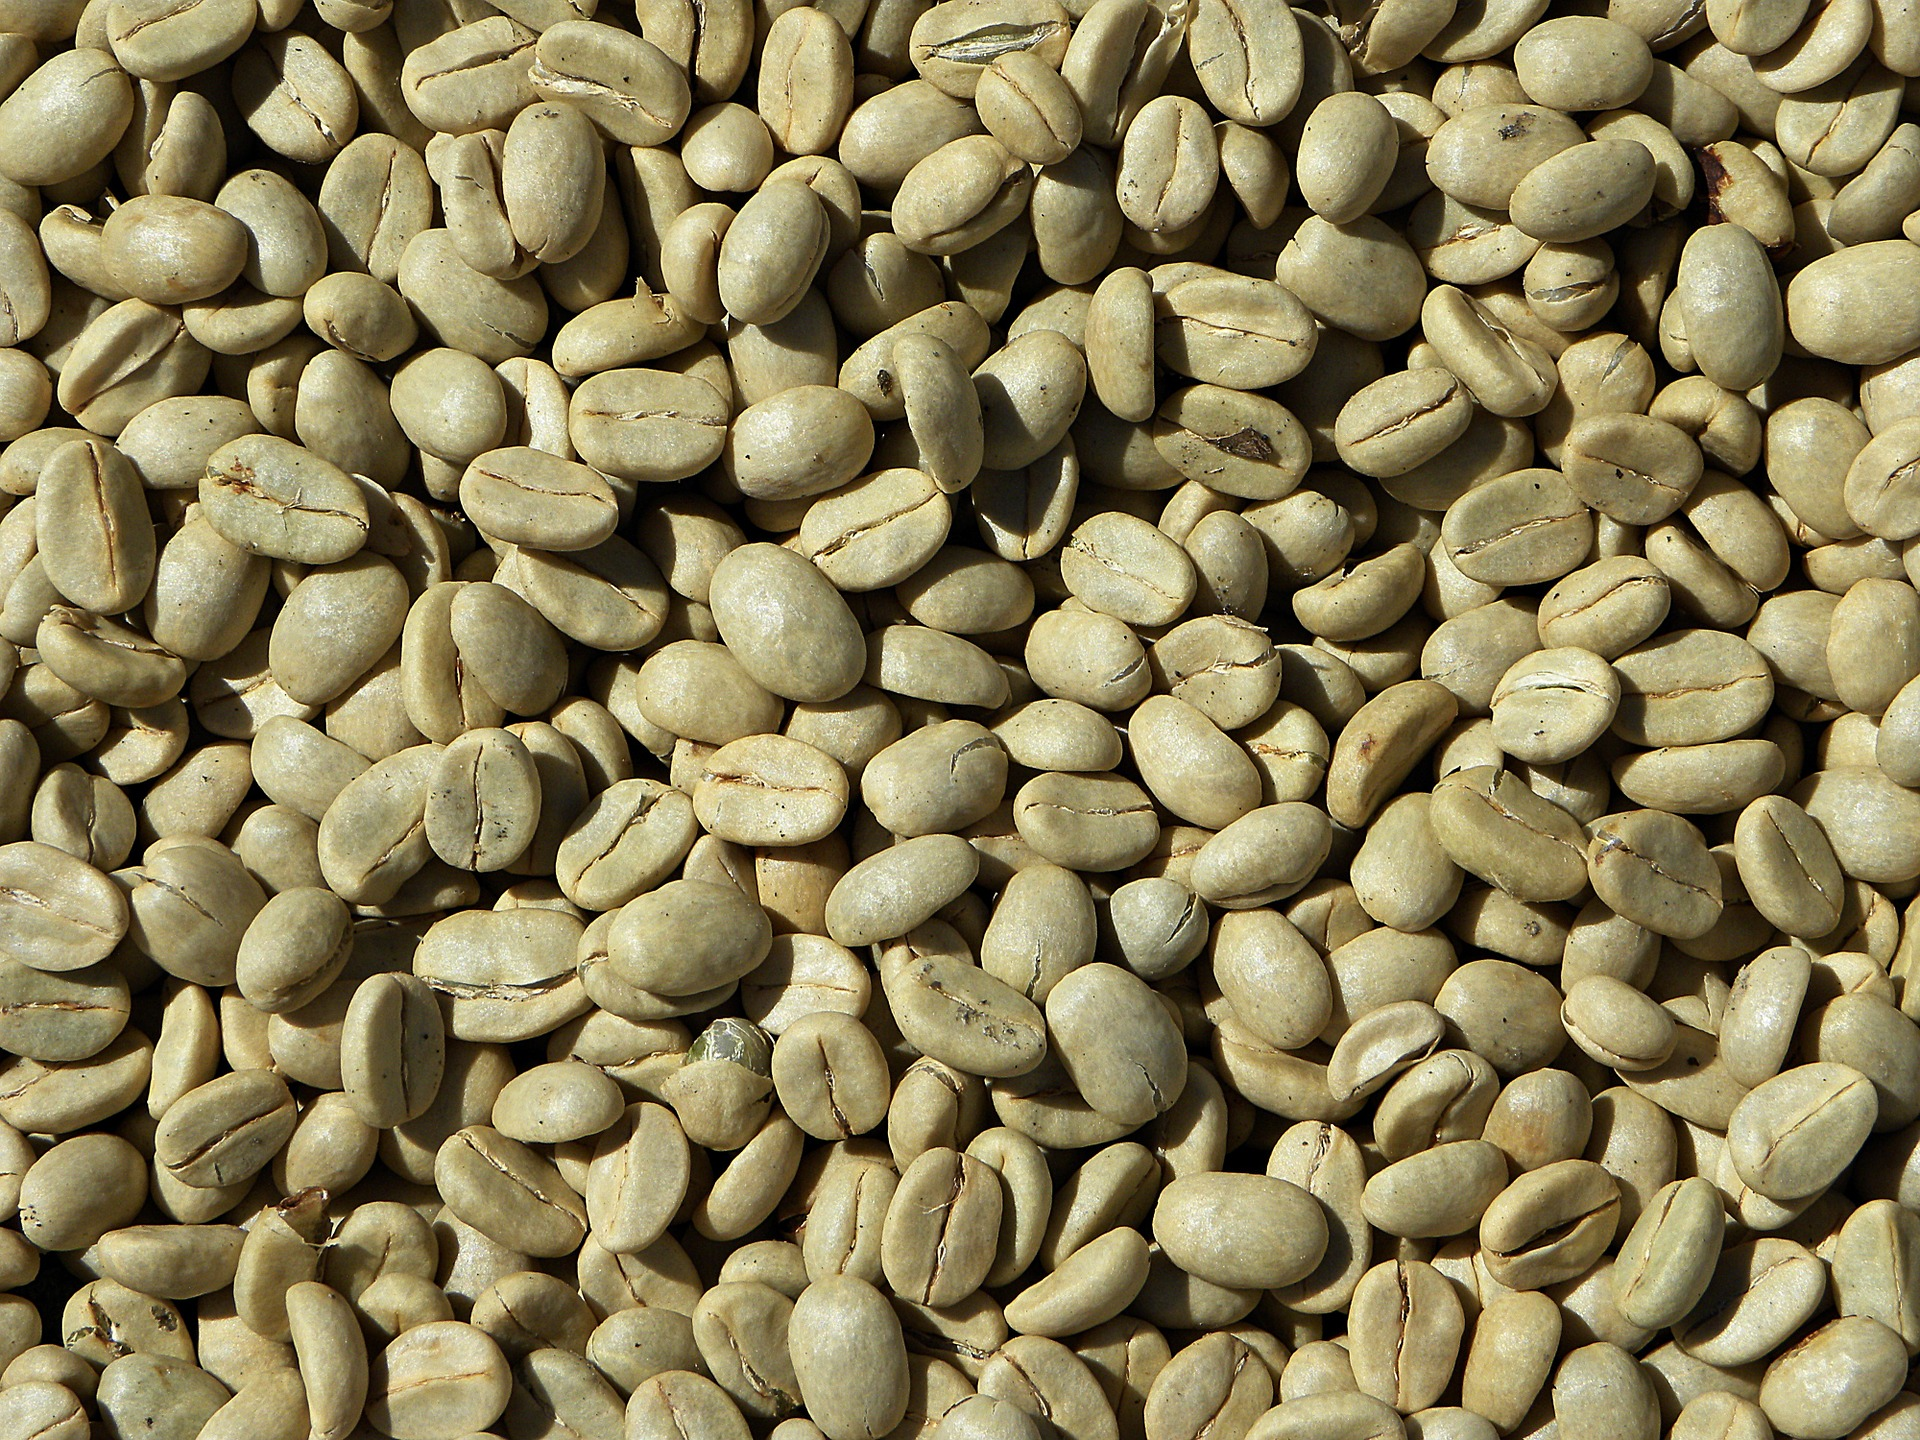 Buy Coffee Beans Blog Archive Green Coffee Beans Make Your Own